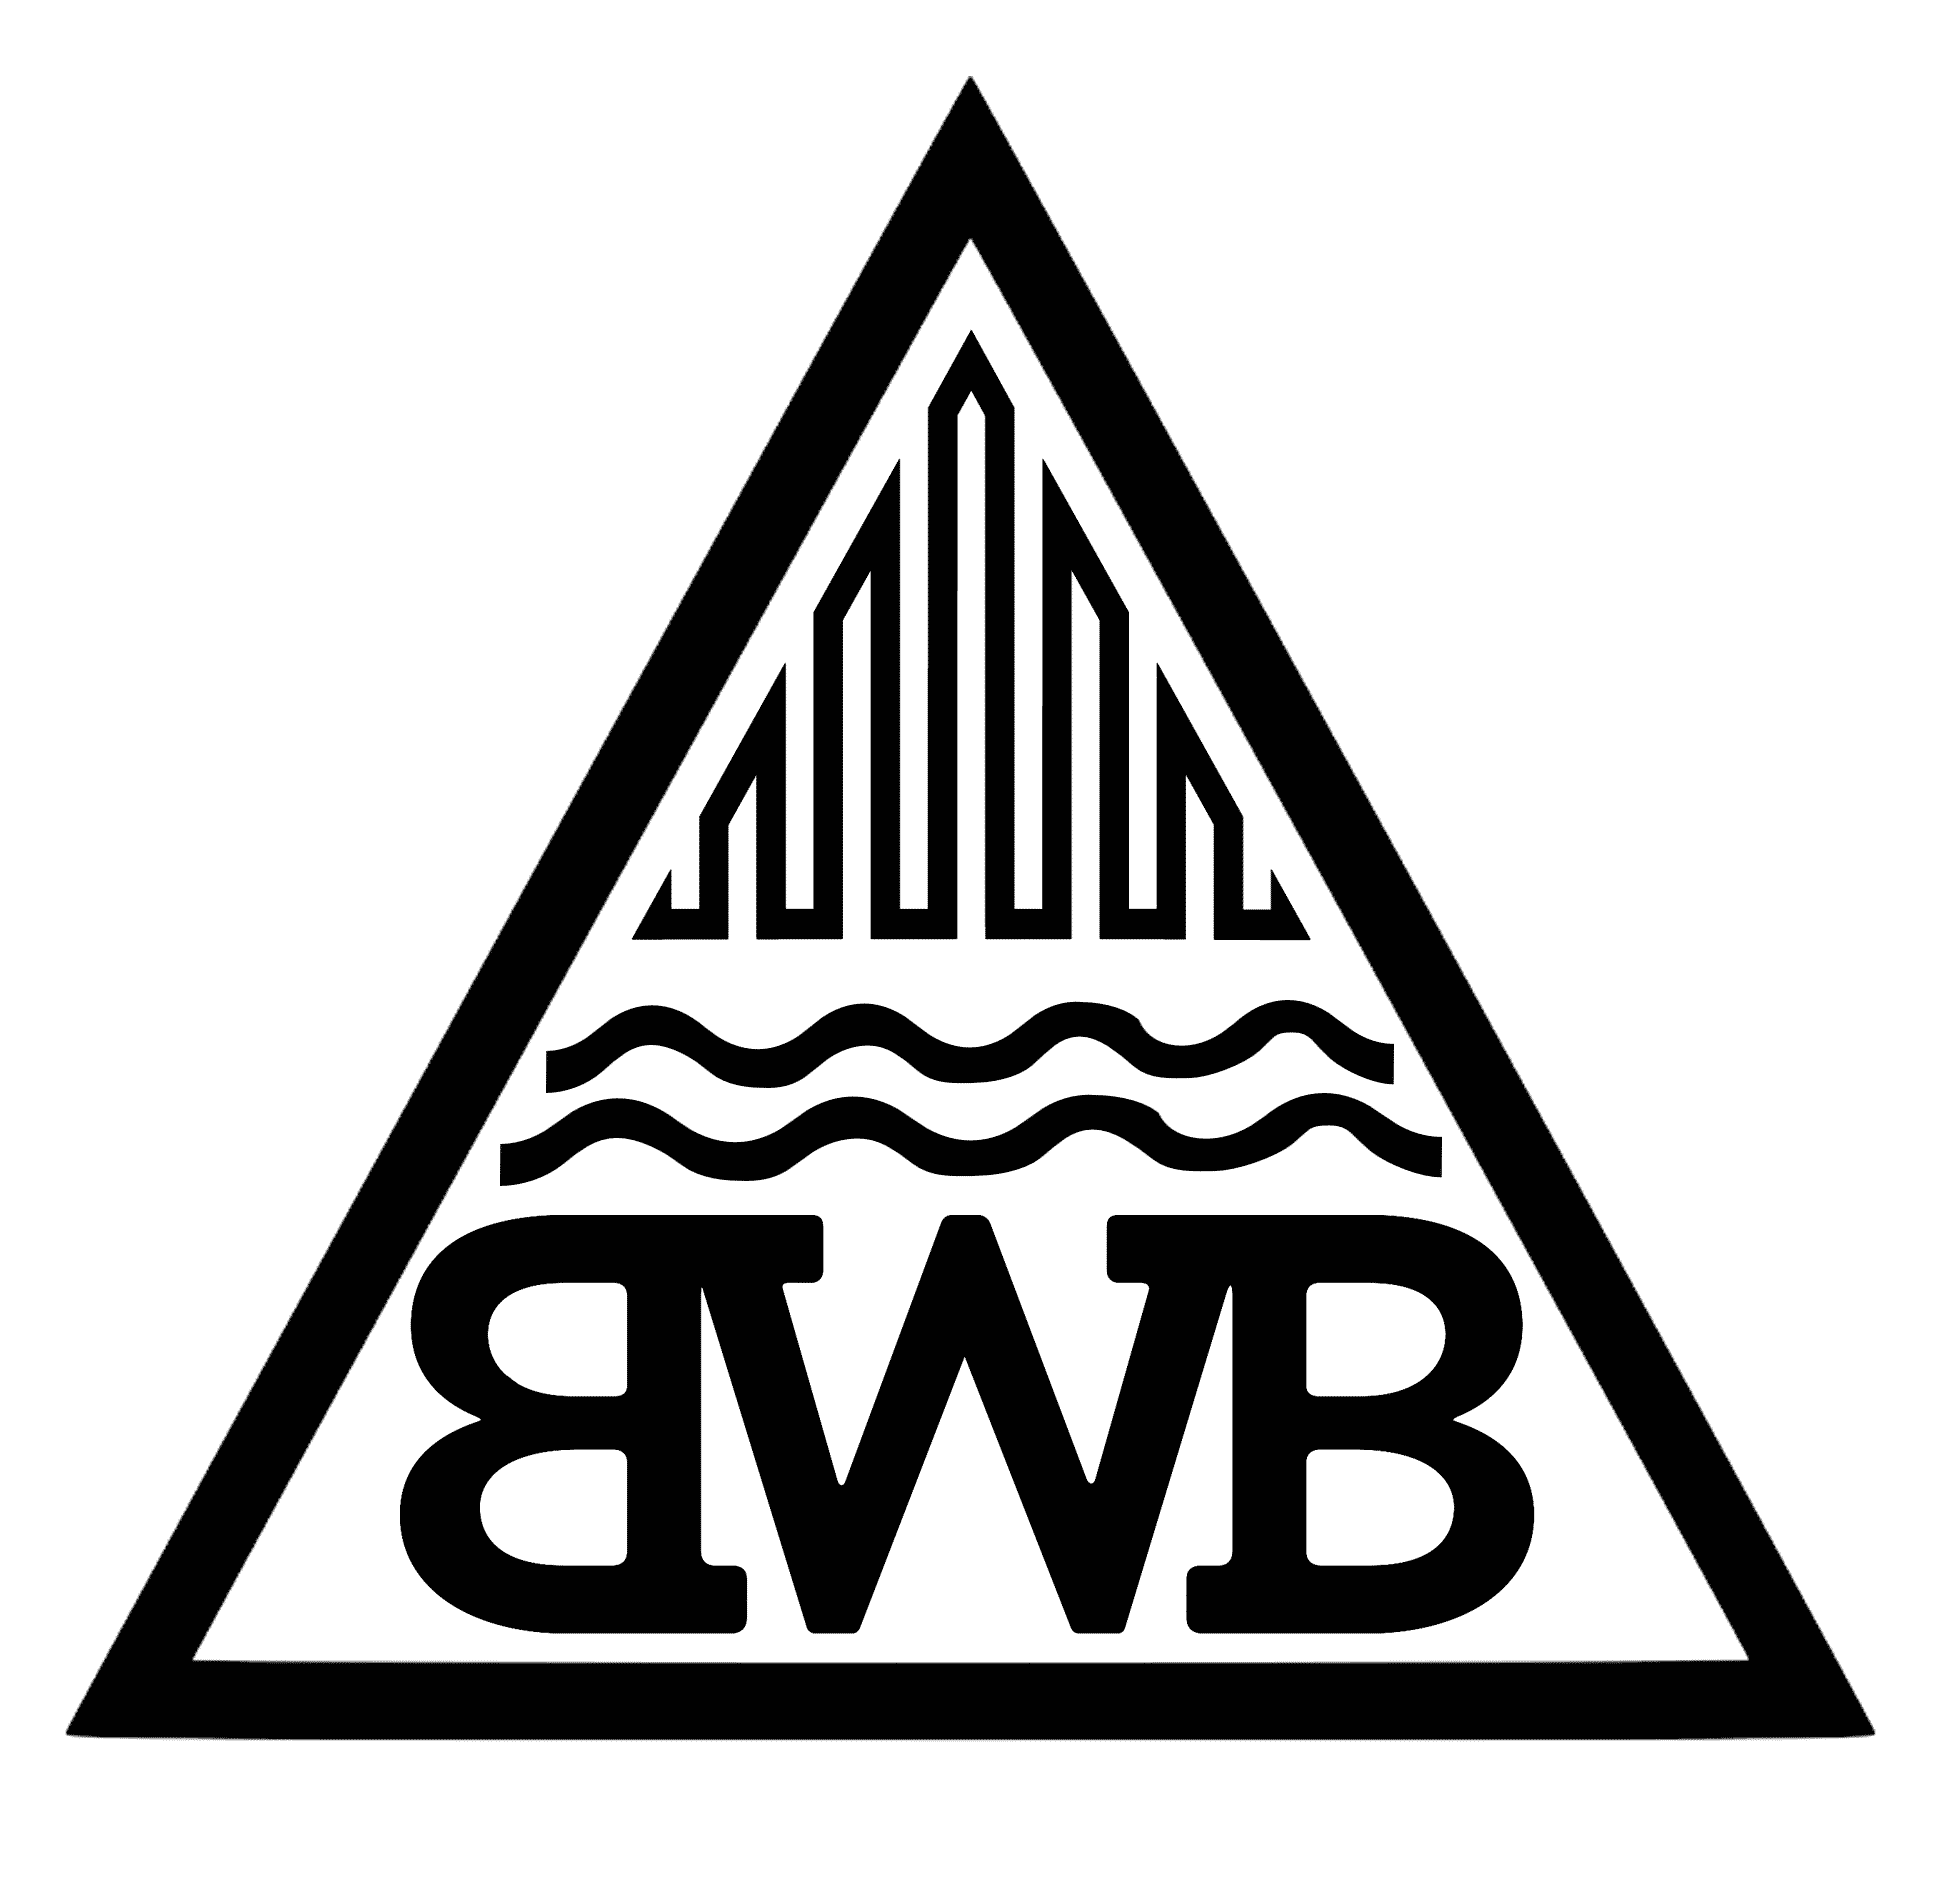 bwb Black Water Brigade - Ontario - Rock